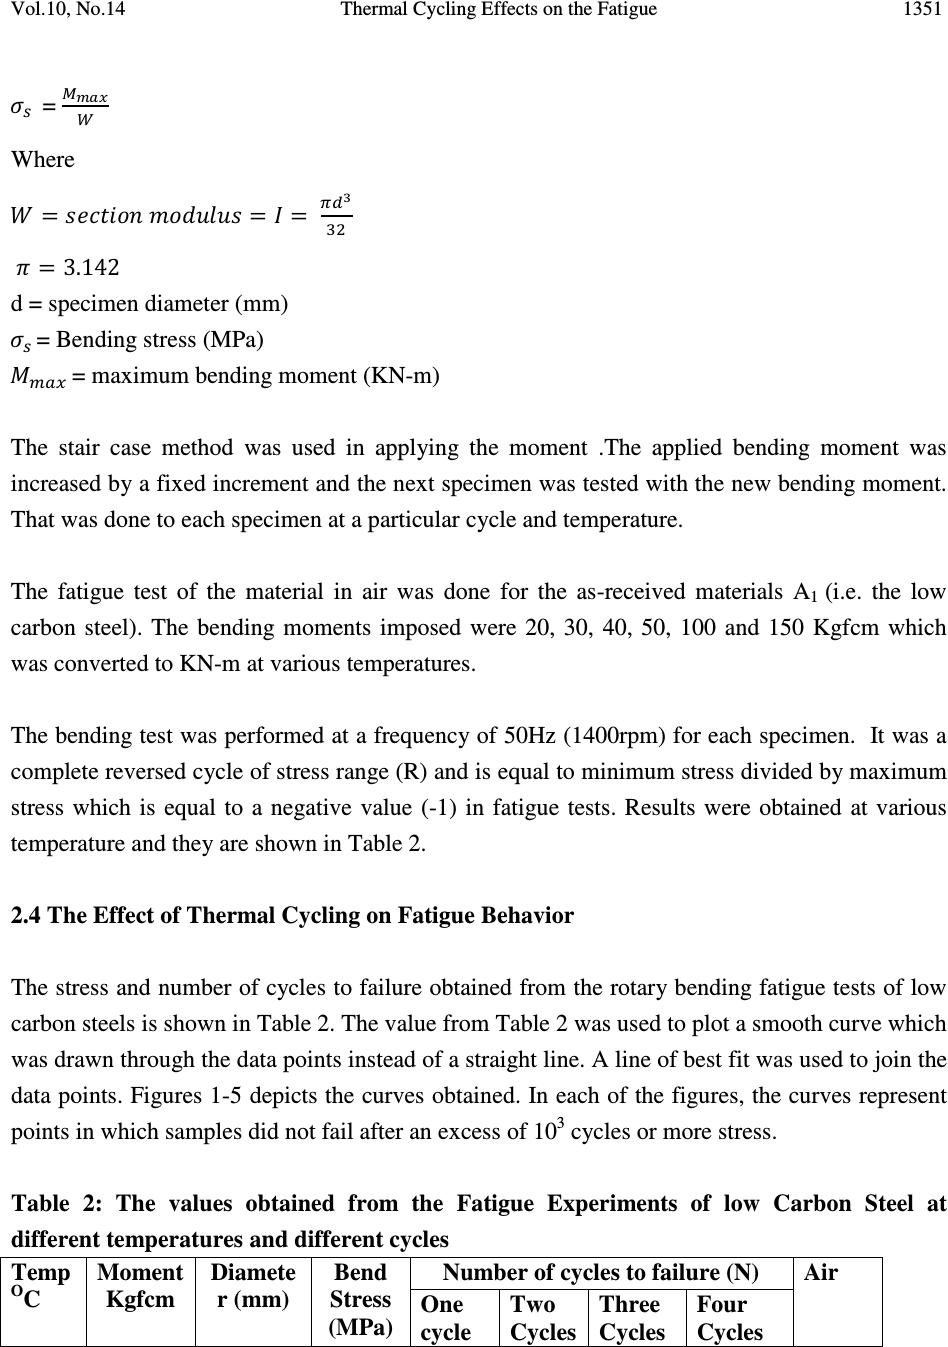 Thermal Cycling Effects on the Fatigue Behaviour of Low